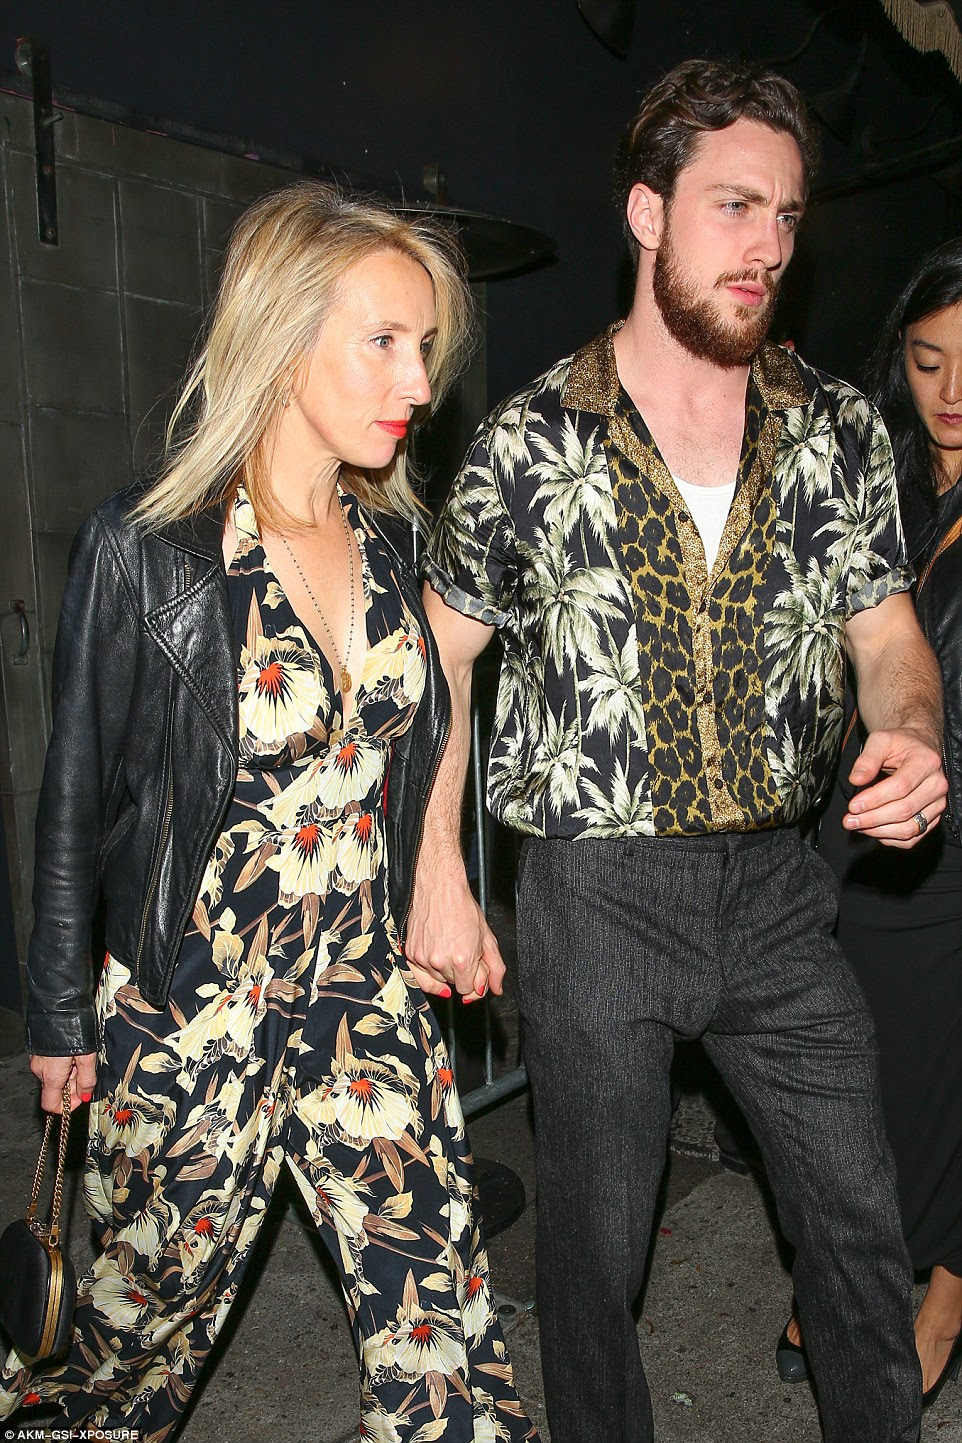 Quite a sight: Aaron Taylor-Johnson and Sam Taylor-Johnson certainly turned heads as they showed up in very daring prints